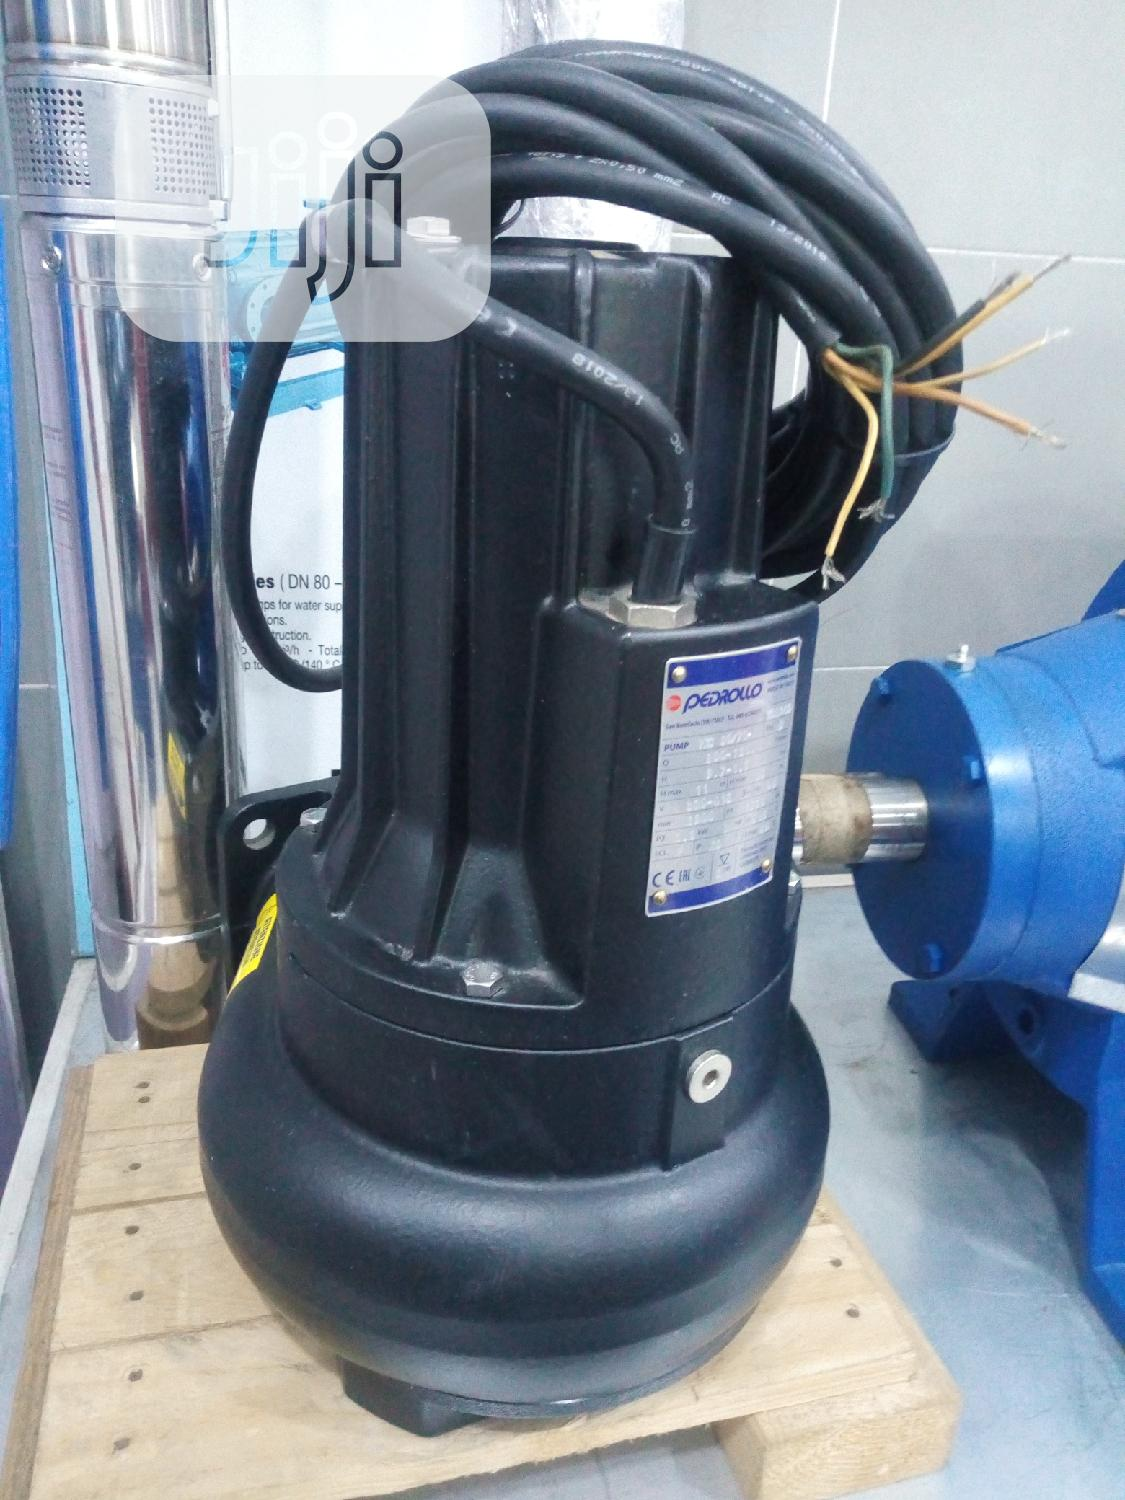 Pedrollo Submersible Sewage Pump